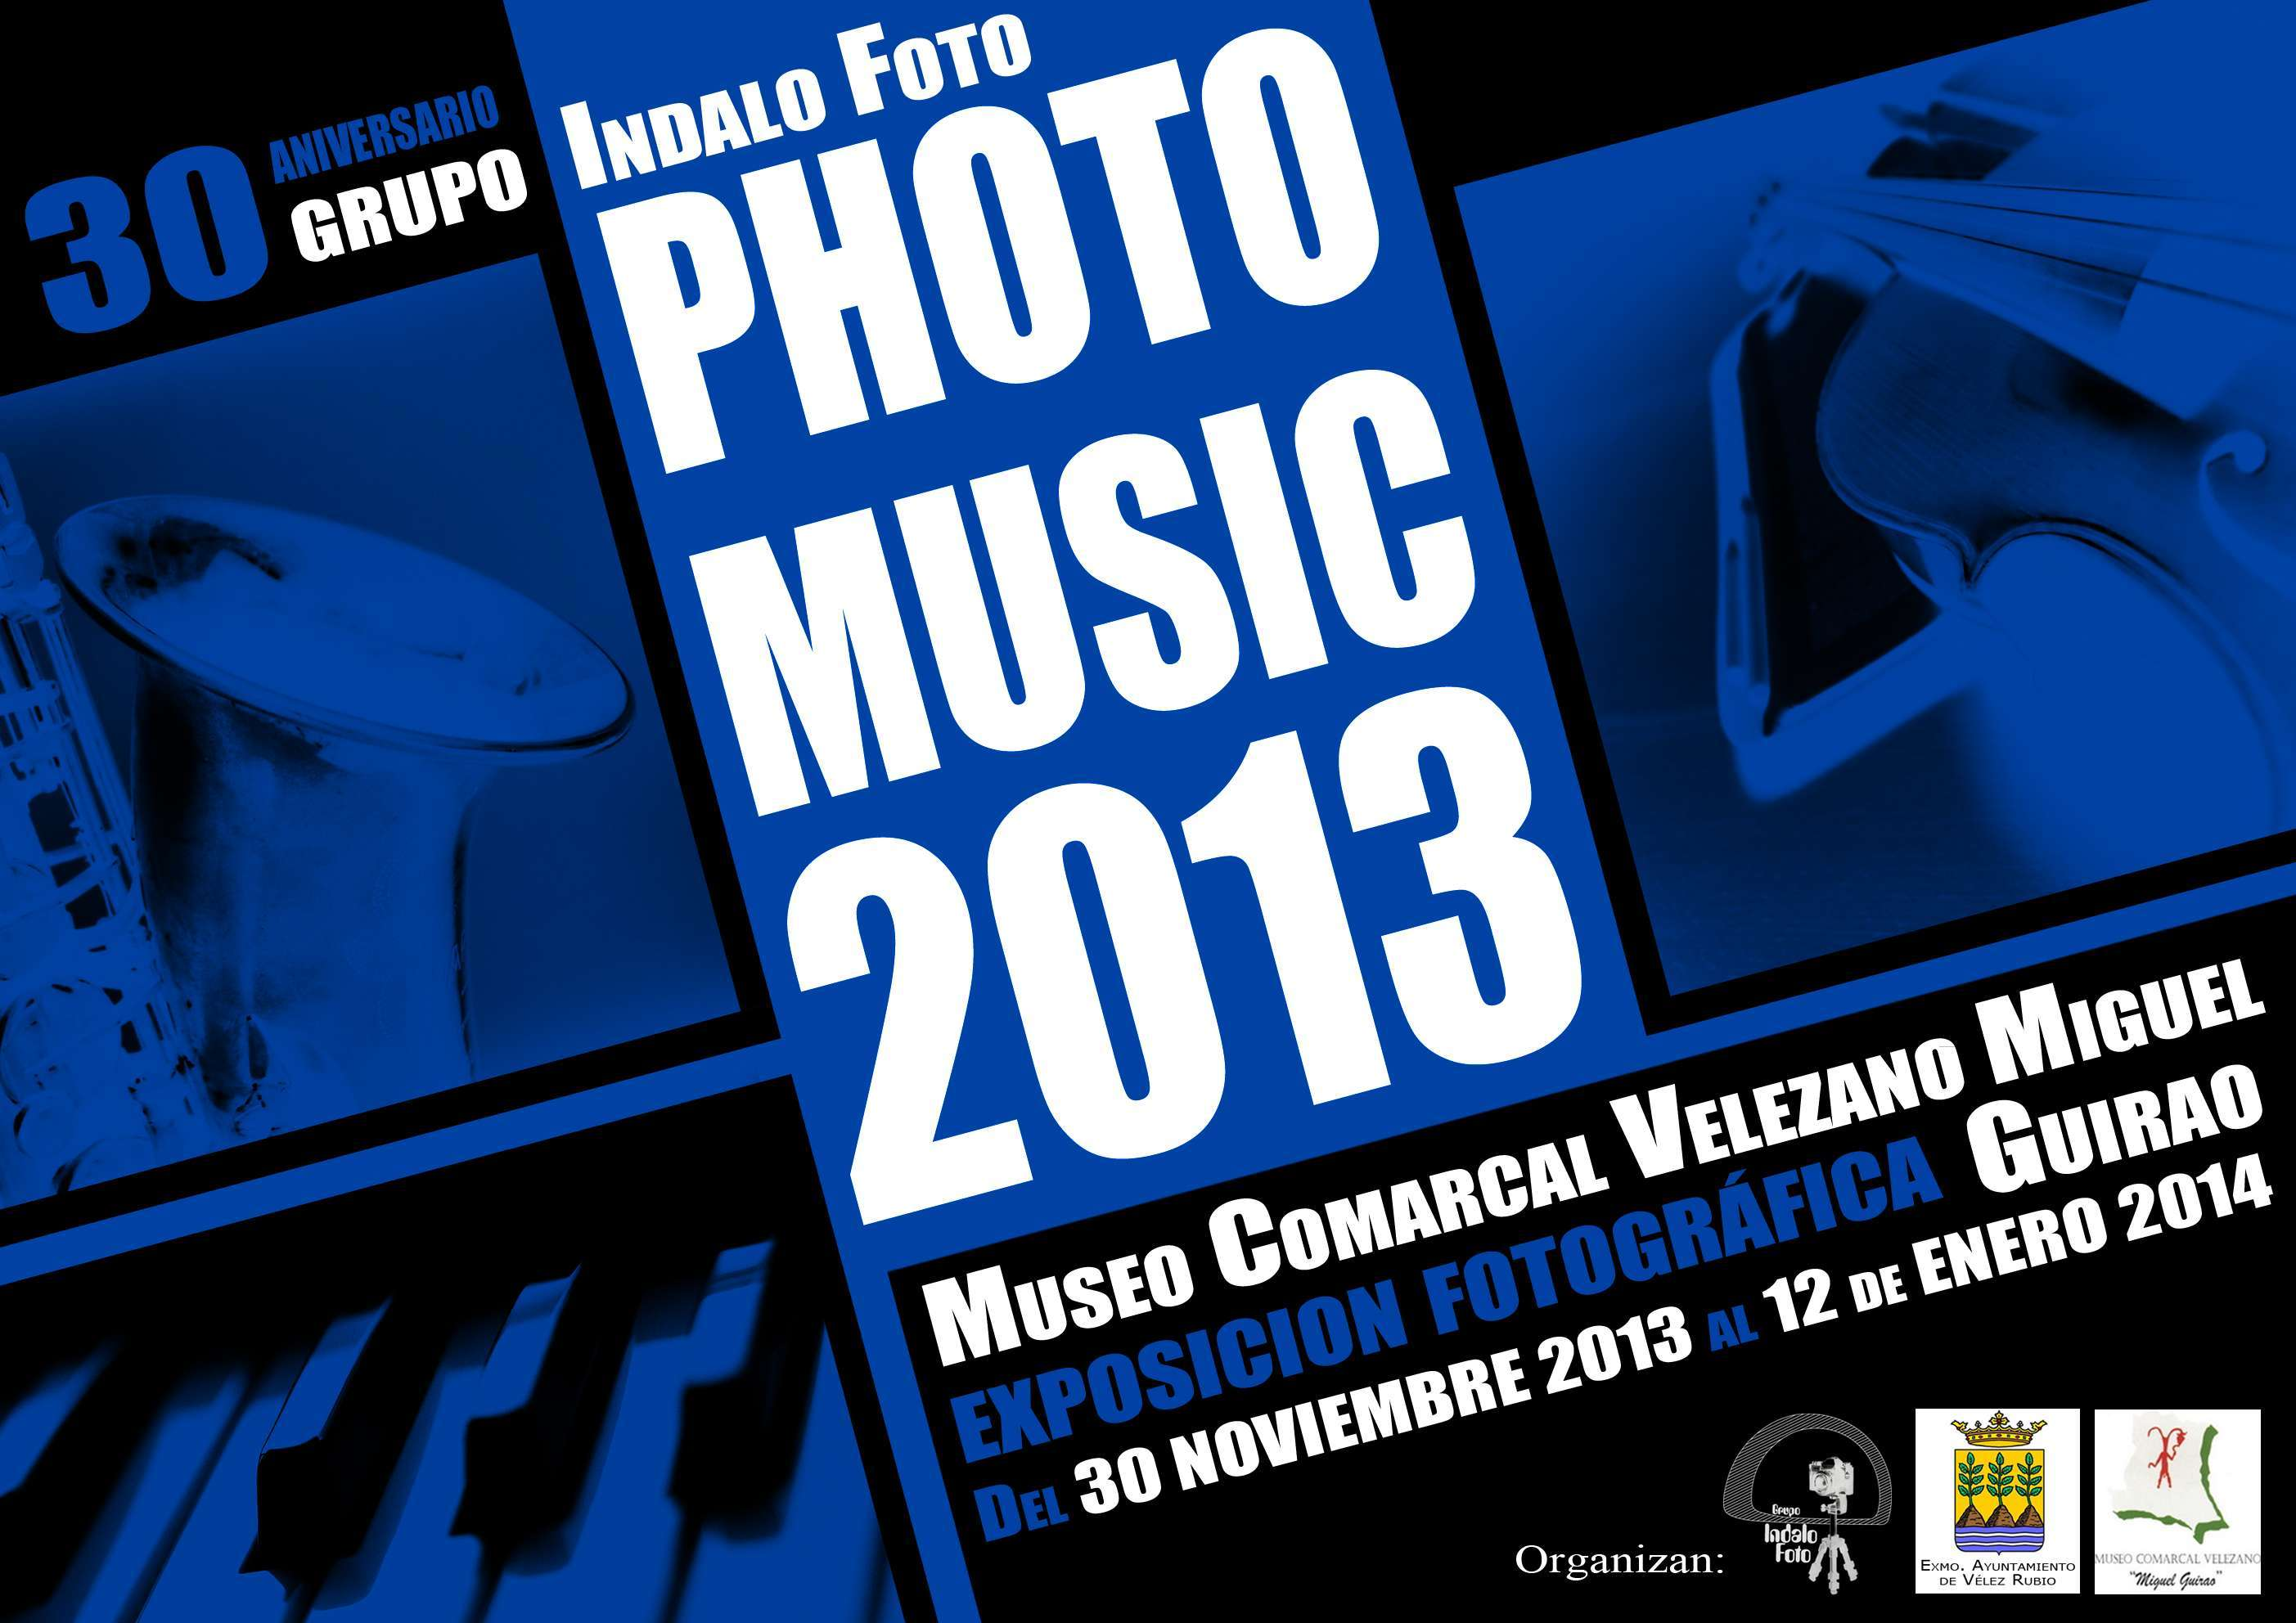 2013 Photo Music Velez Rubio 2013